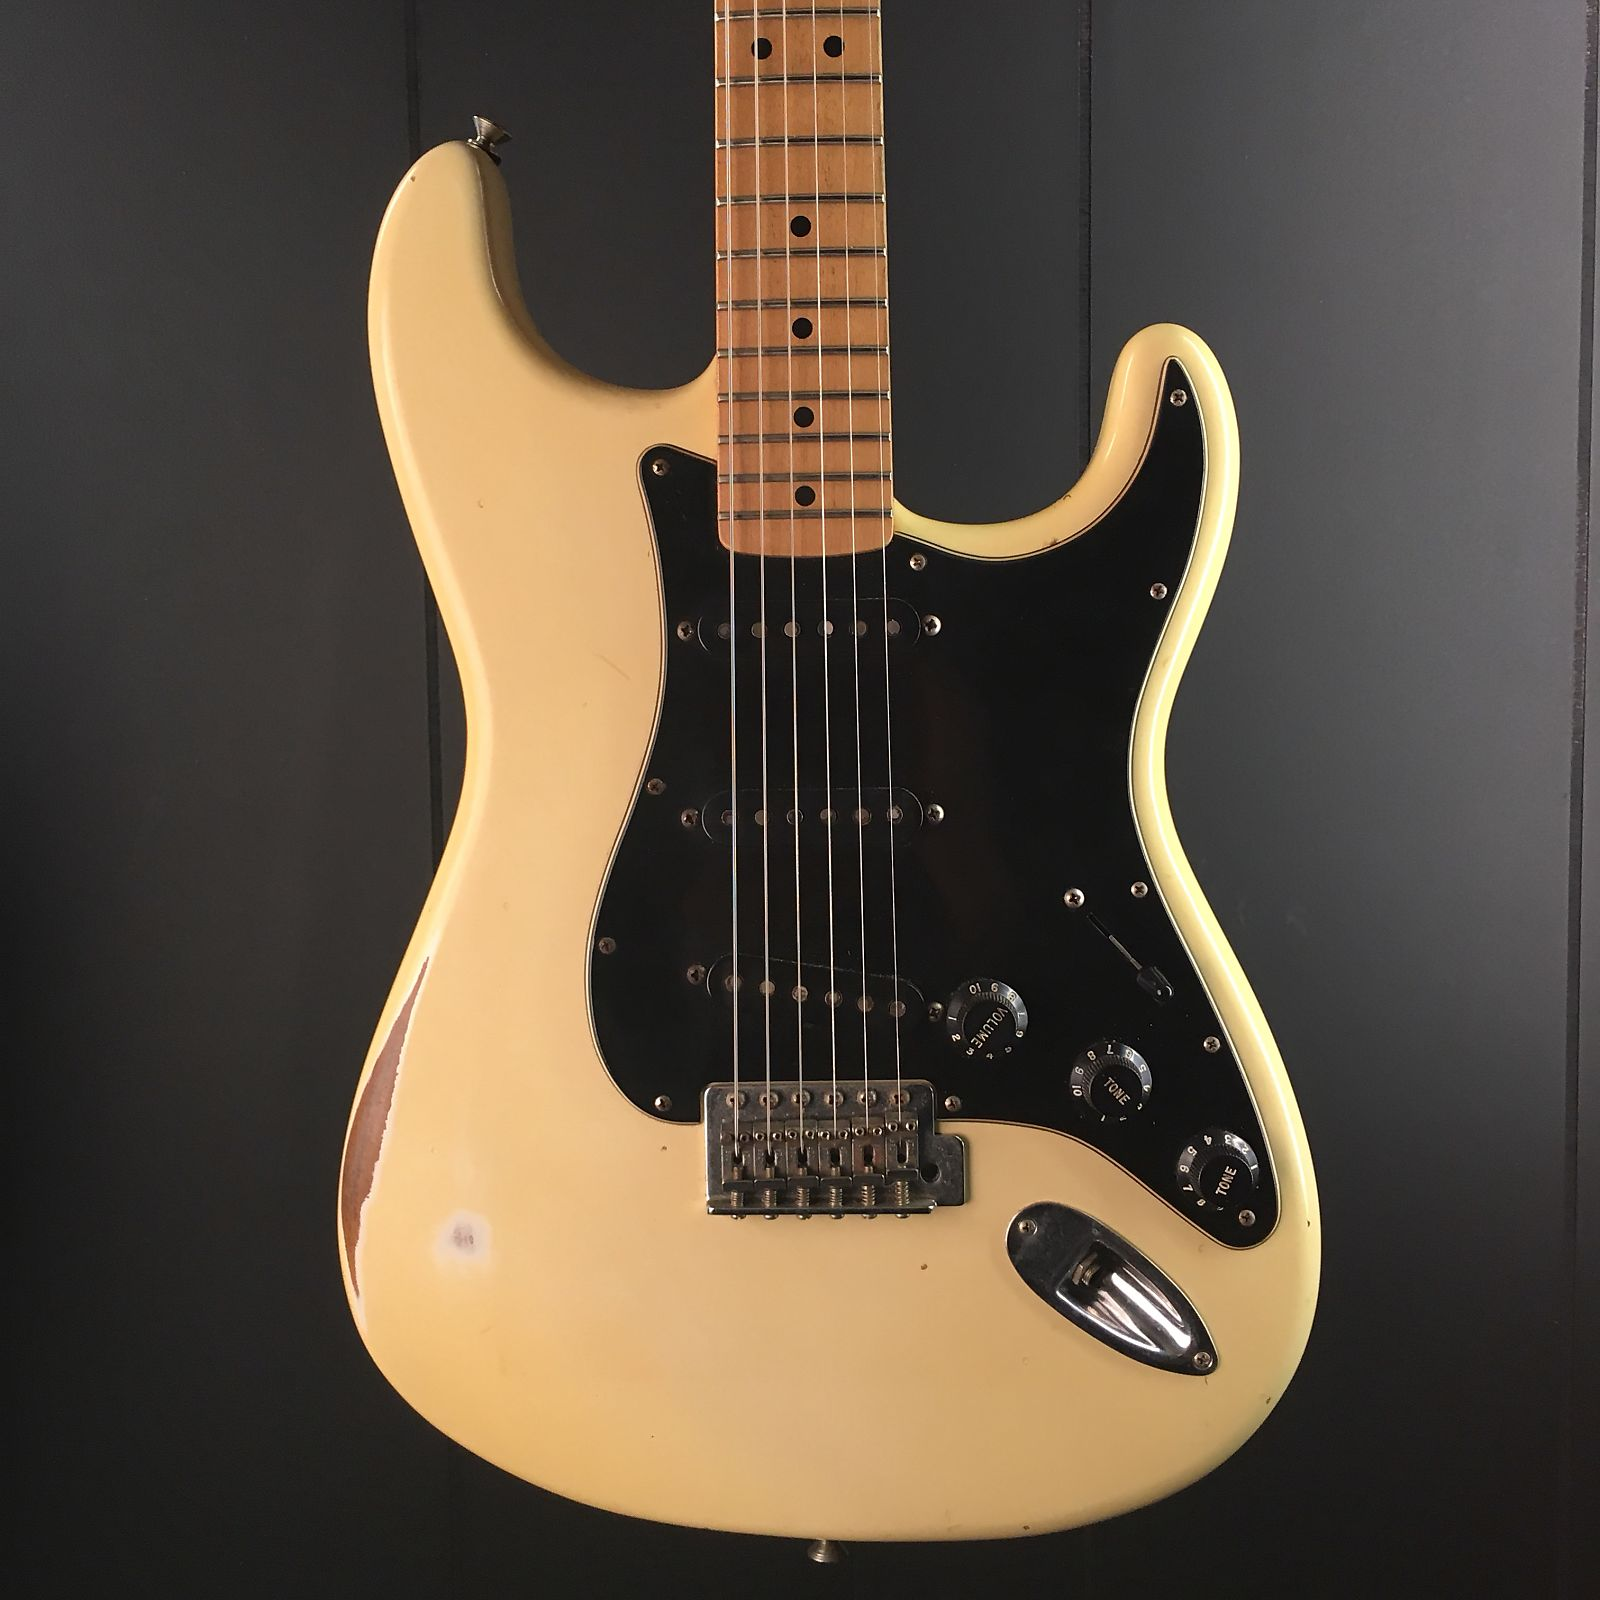 fender stratocaster used made in mexico free shipping. Black Bedroom Furniture Sets. Home Design Ideas